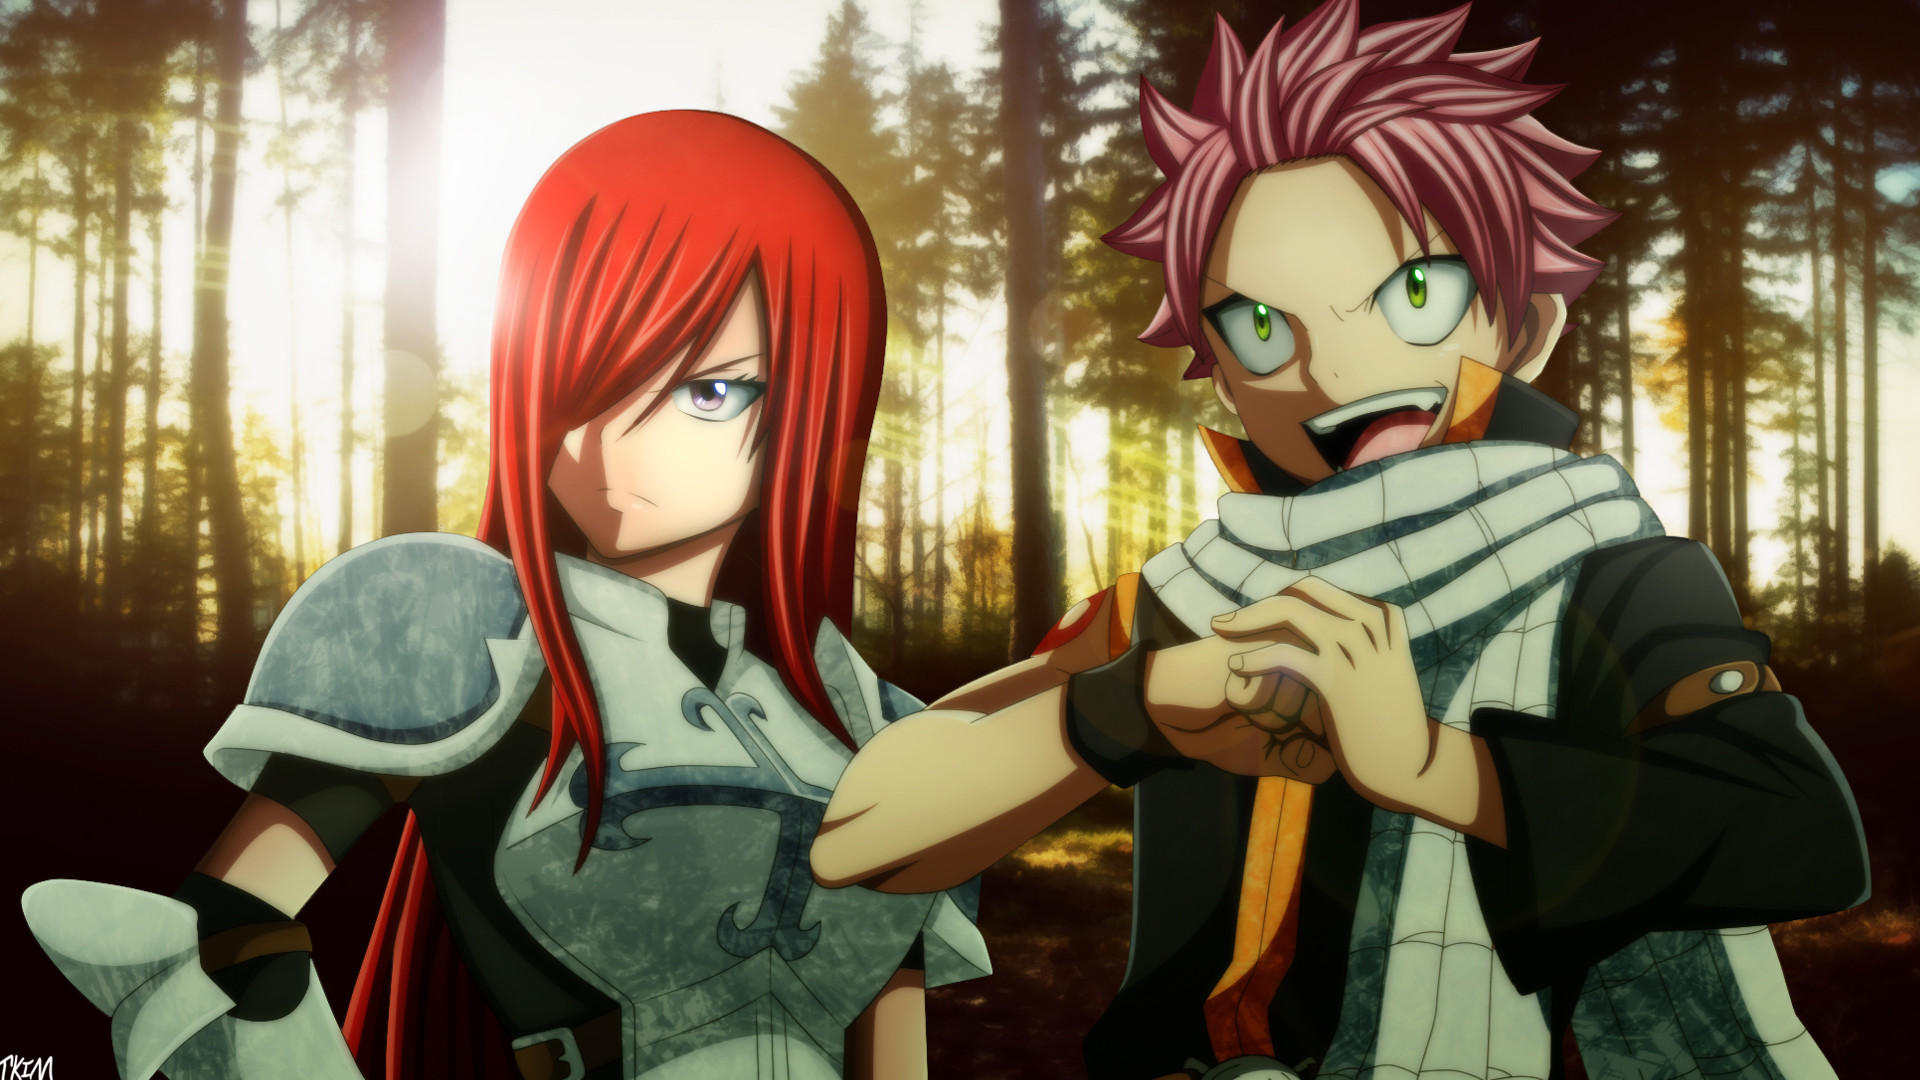 natsu dragneel and erza scarlet fairy tail anime